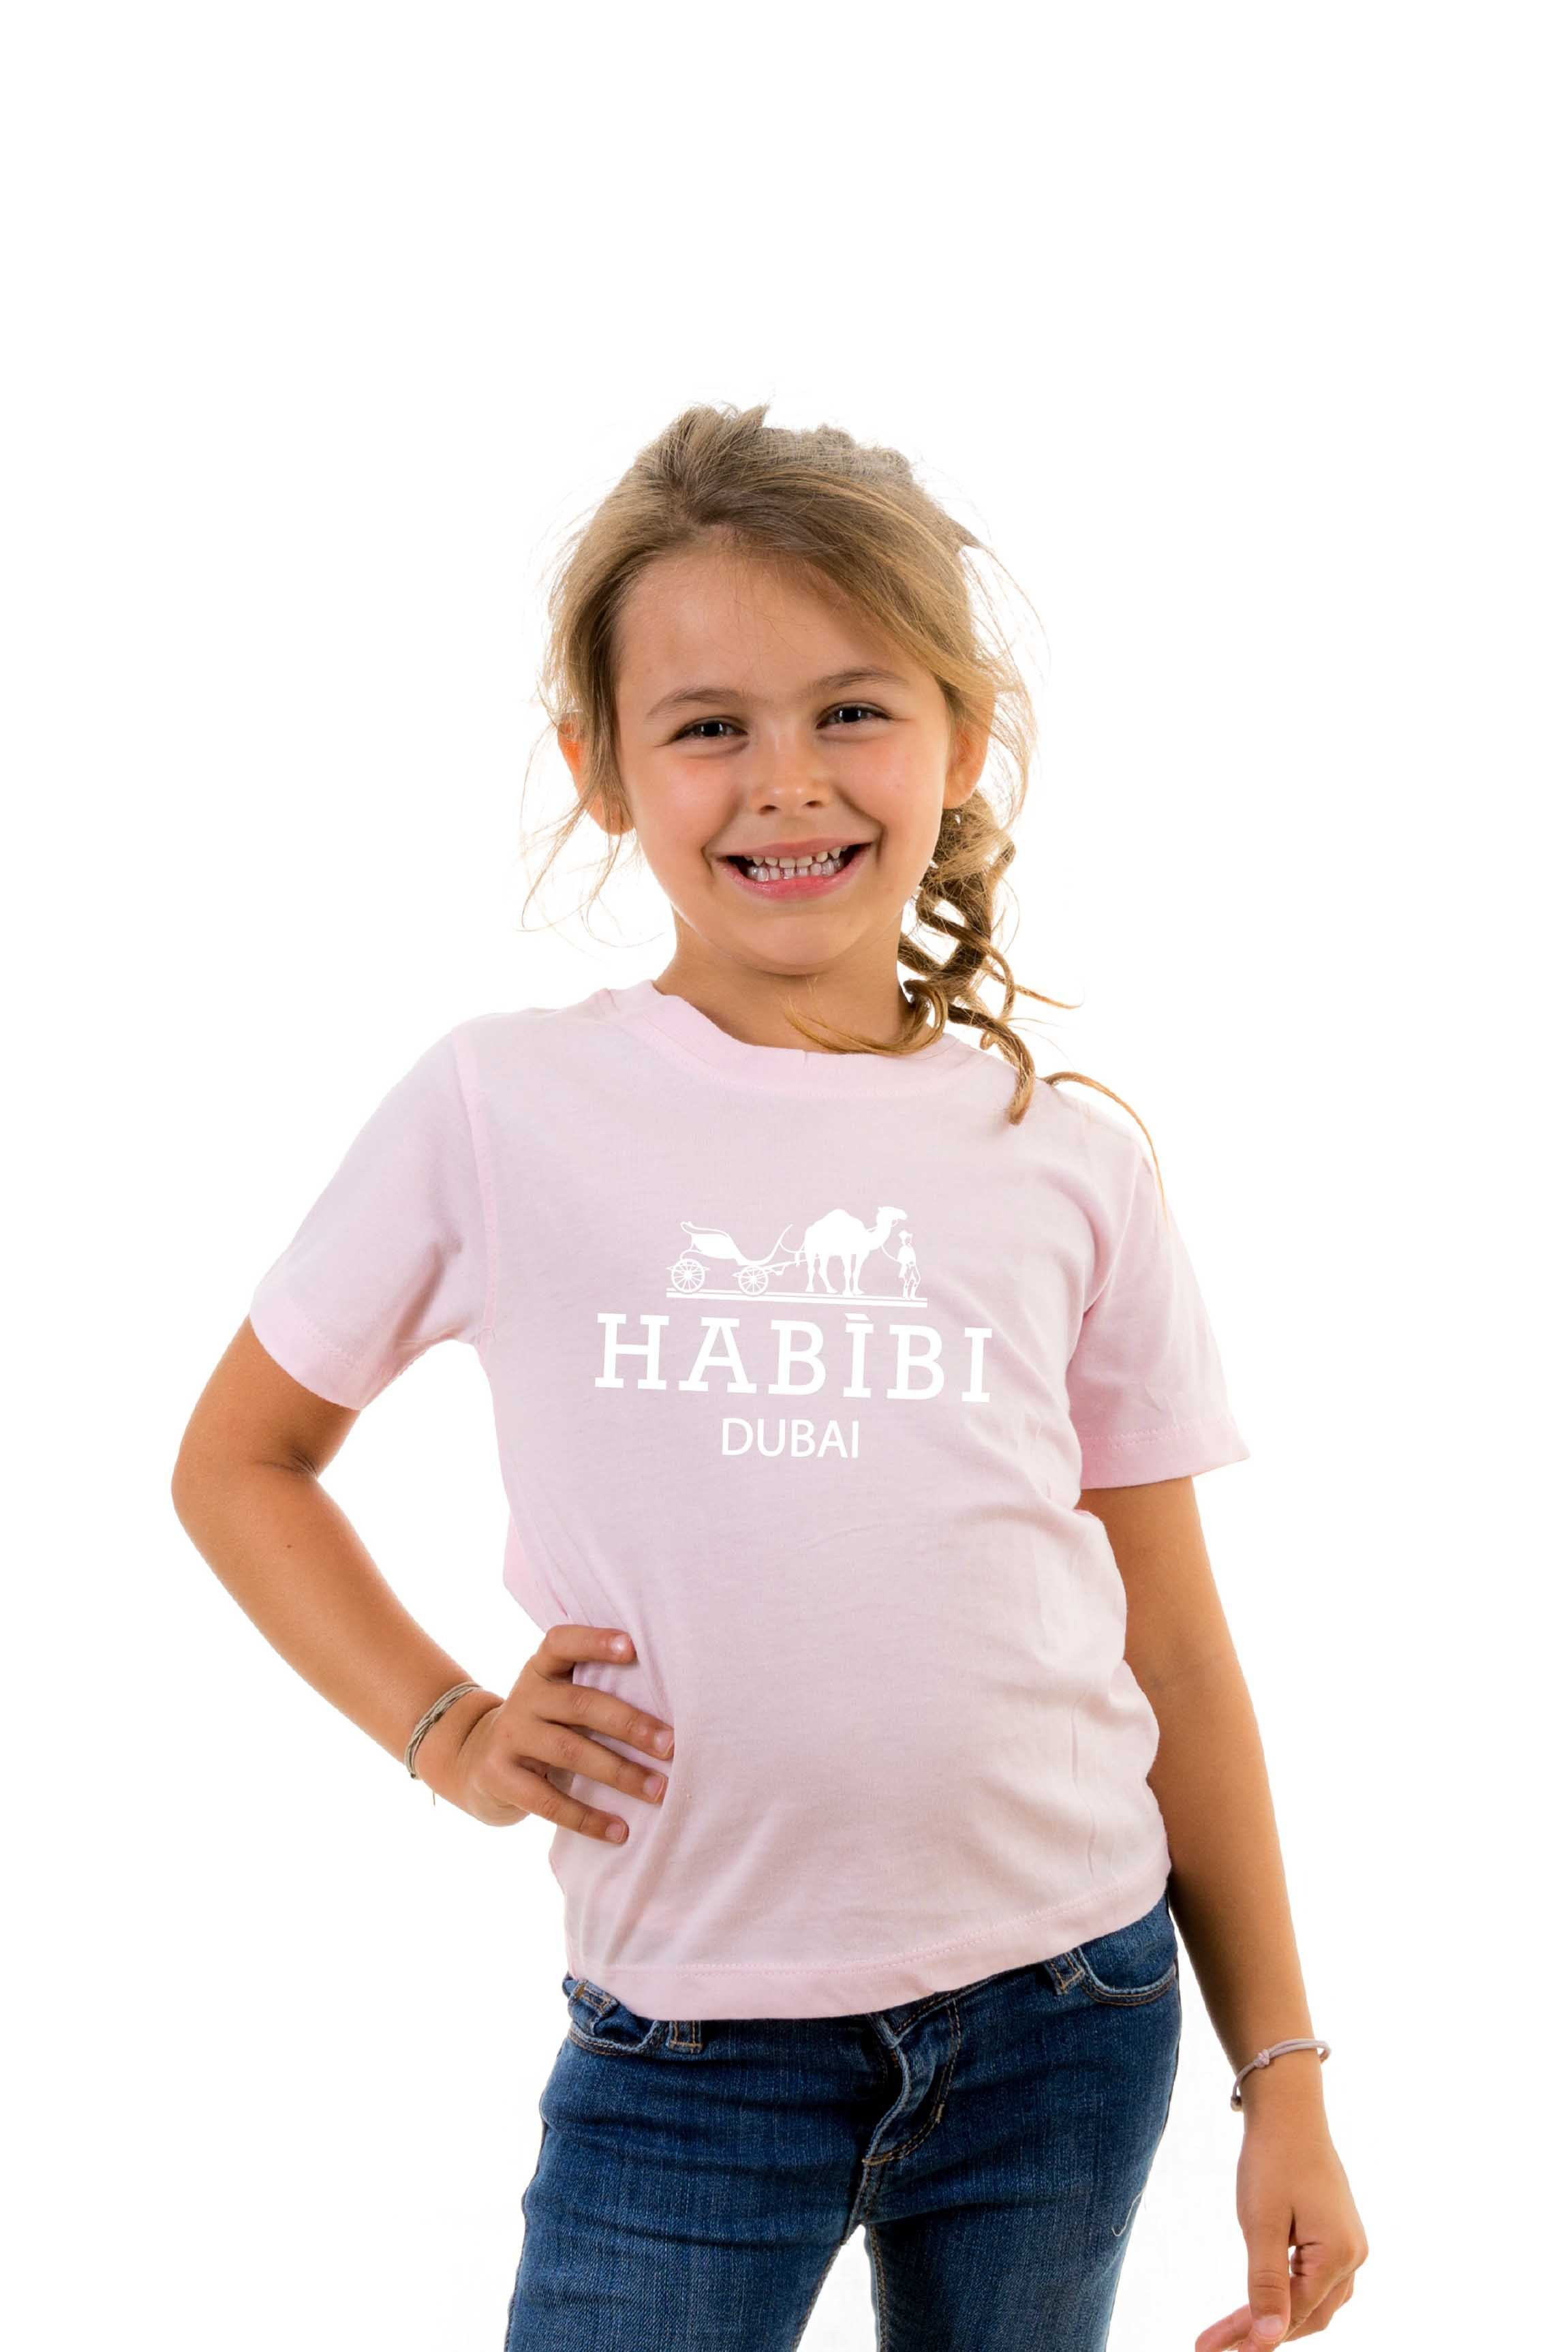 Ihram Kids For Sale Dubai: T-shirt Kid Habibi Dubaï